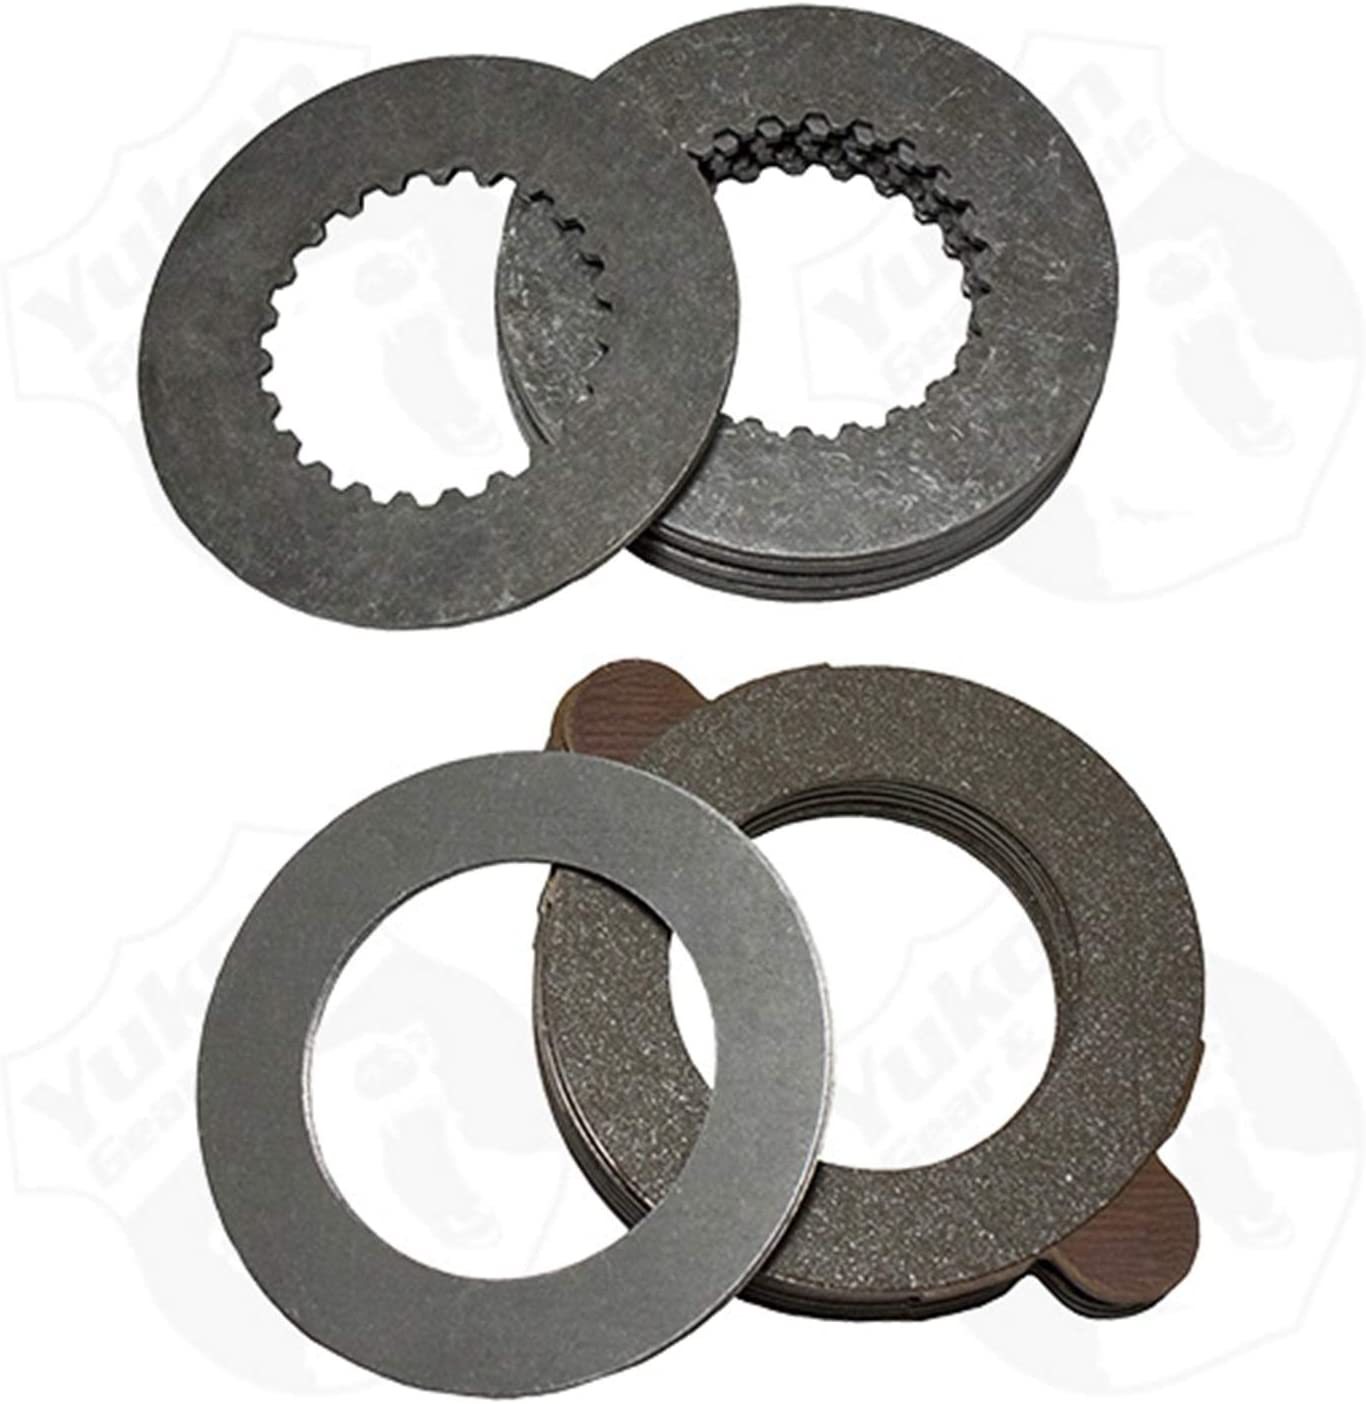 TracLoc Clutch Set for Dana 28//36 ICA//AMC Model35//Chrysler 8.25 Differential YPKC8.25-PC-T//L Yukon Gear /& Axle